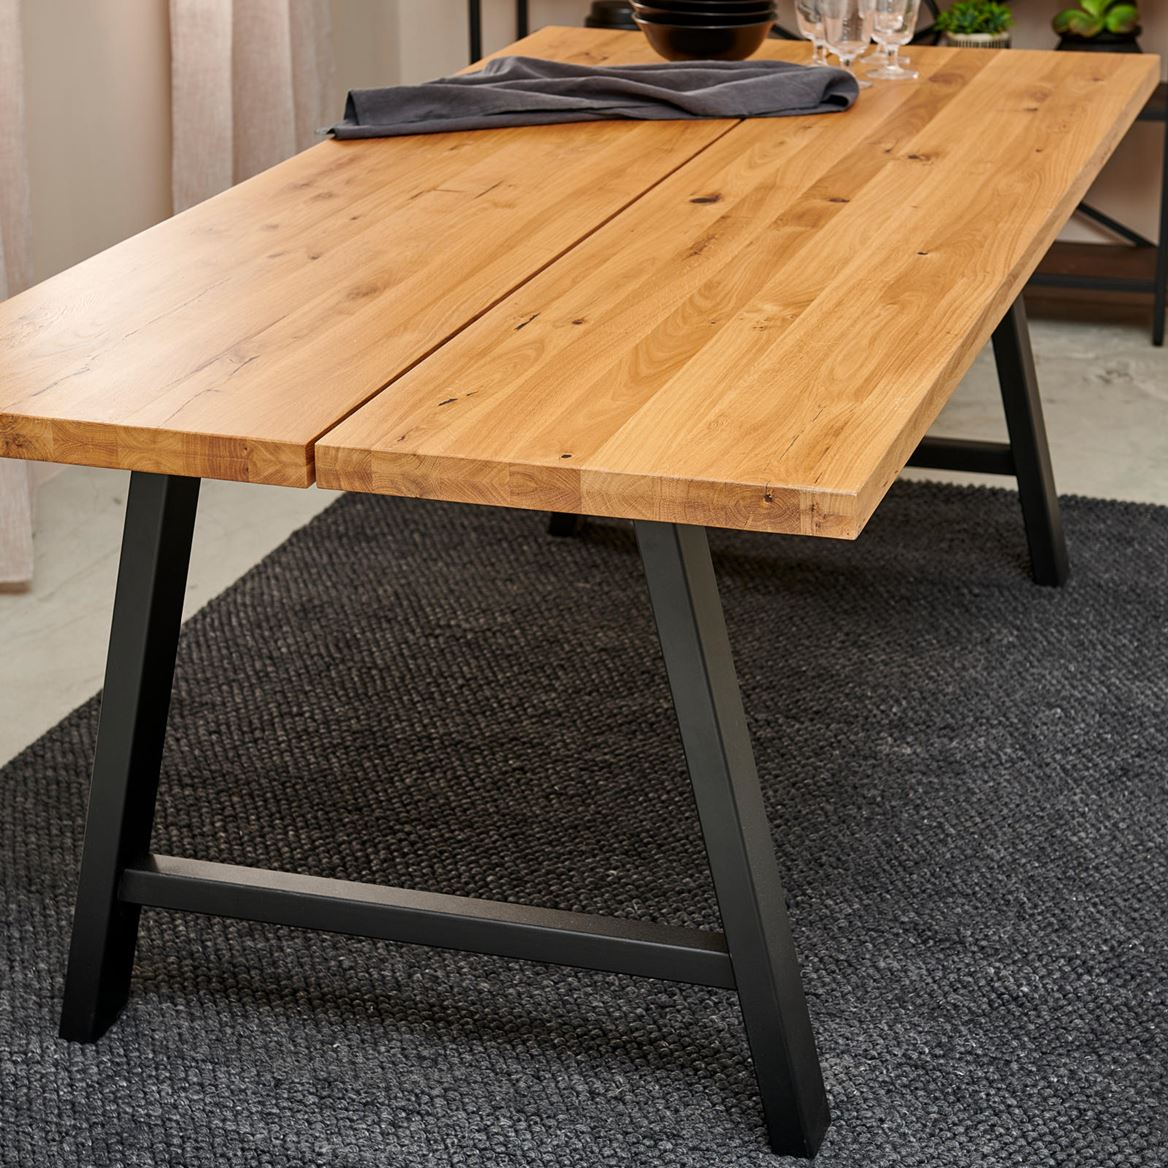 OAK SPLIT Table naturel H 75 x Larg. 95 x Long. 200 cm_oak-split-table-naturel-h-75-x-larg--95-x-long--200-cm